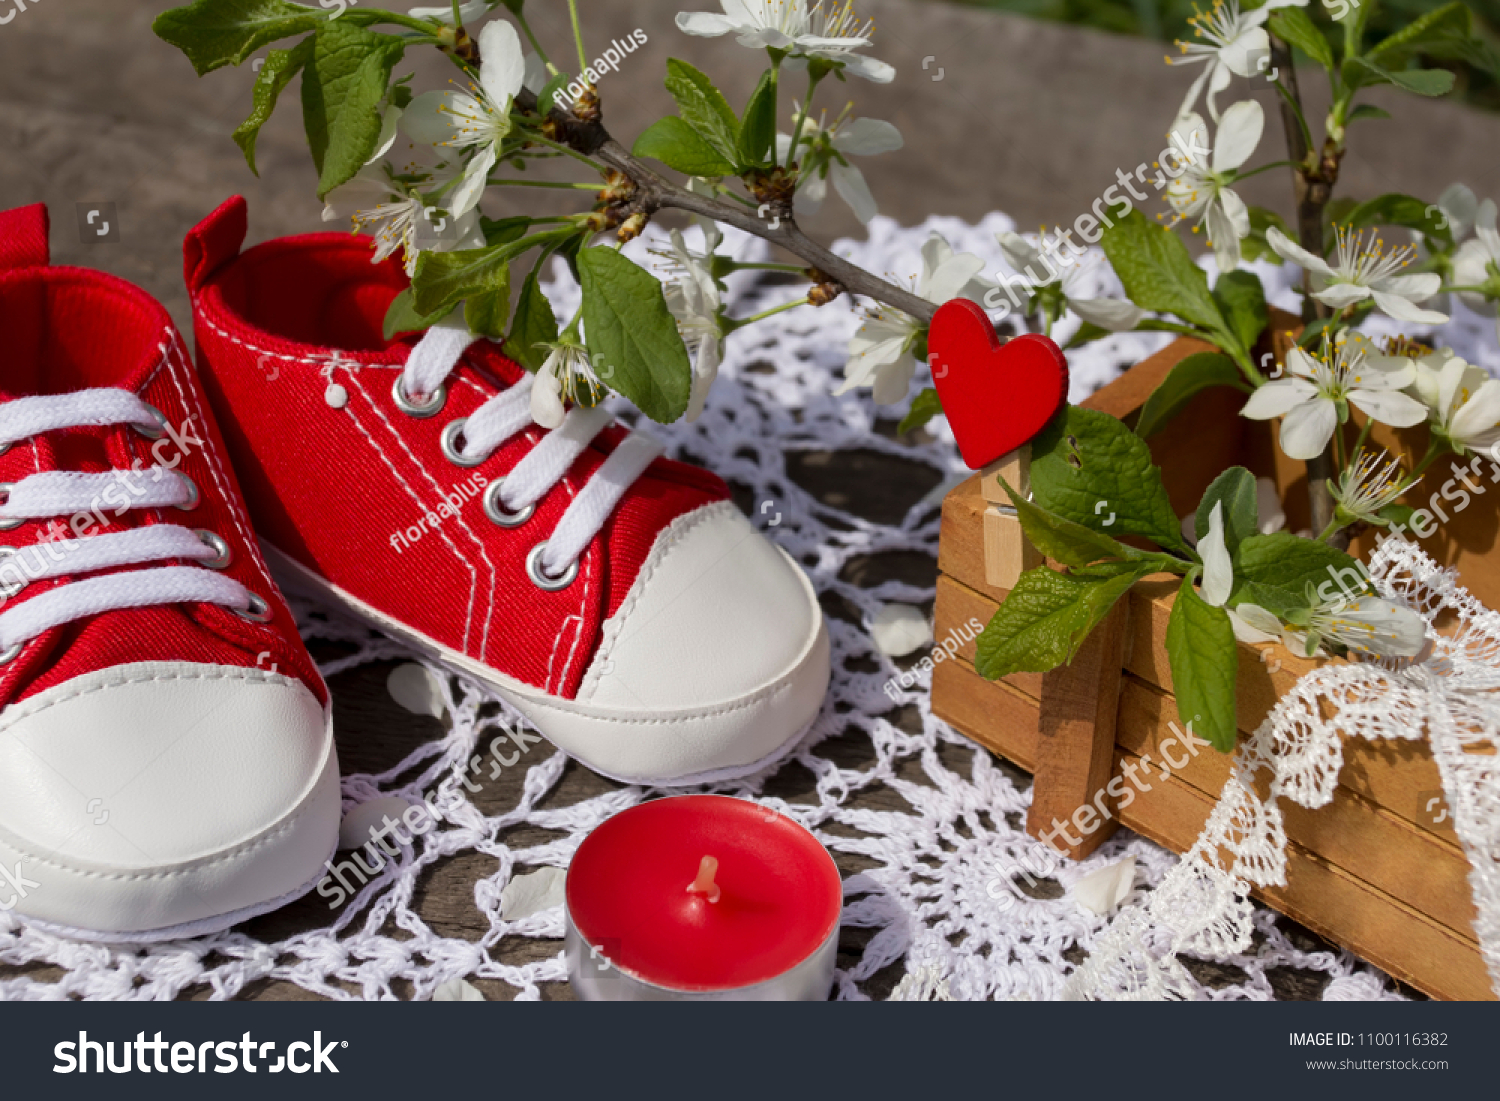 stock-photo-spring-still-life-with-red-c